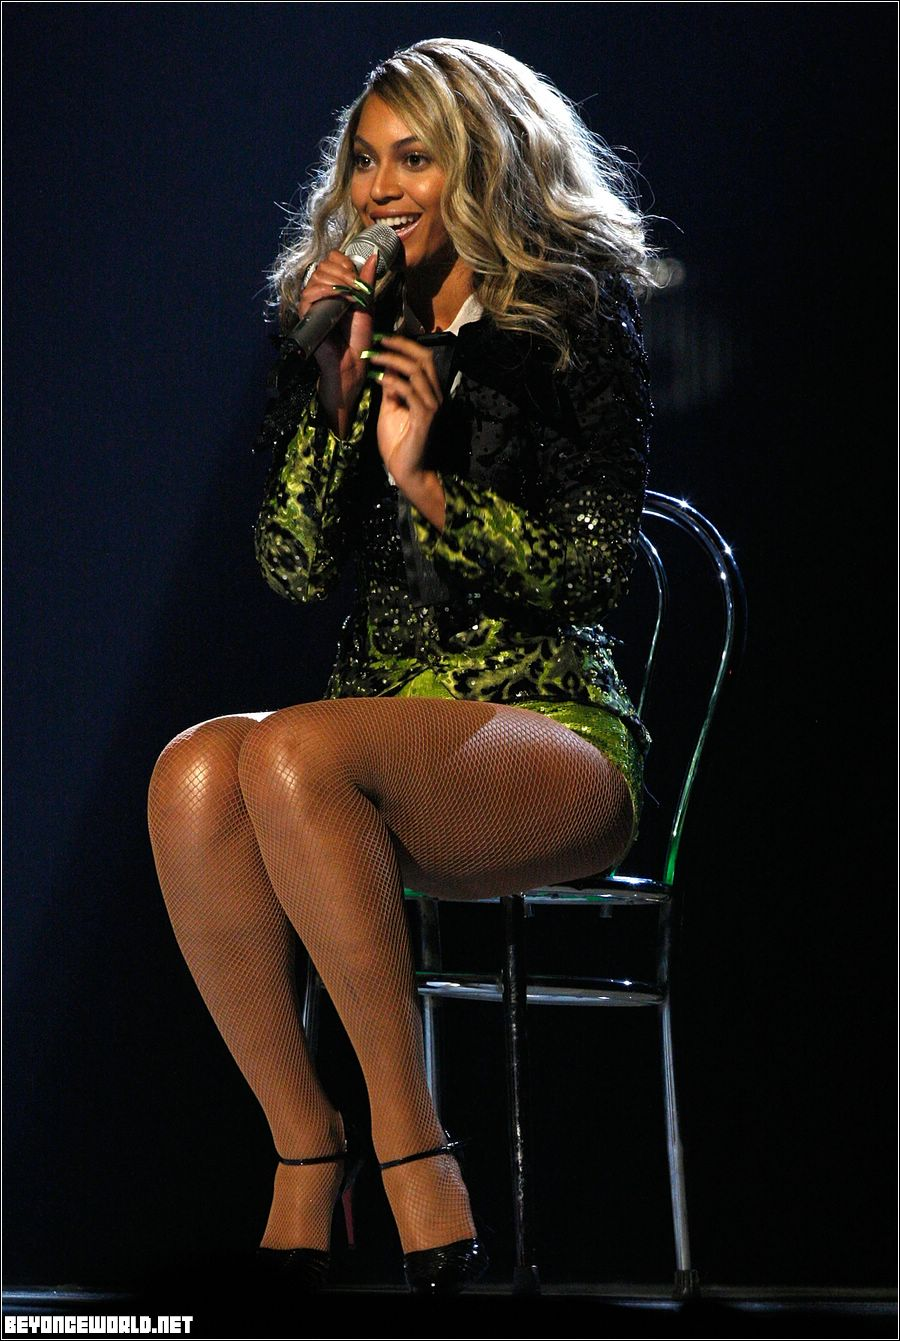 Amusing Beyonce sexy legs and thighs assured